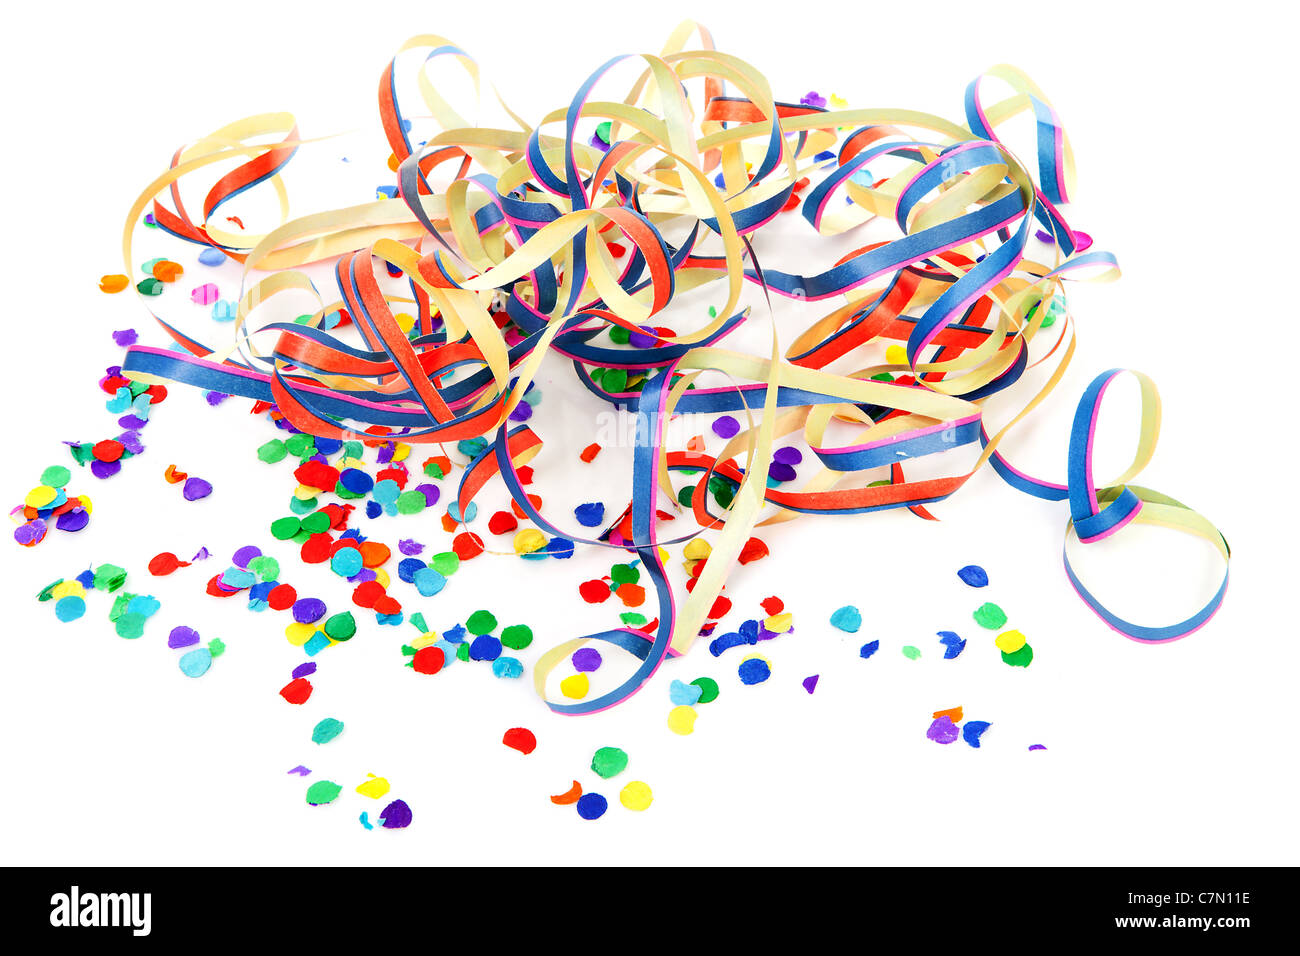 colorful confetti and party streamers over white background - Stock Image